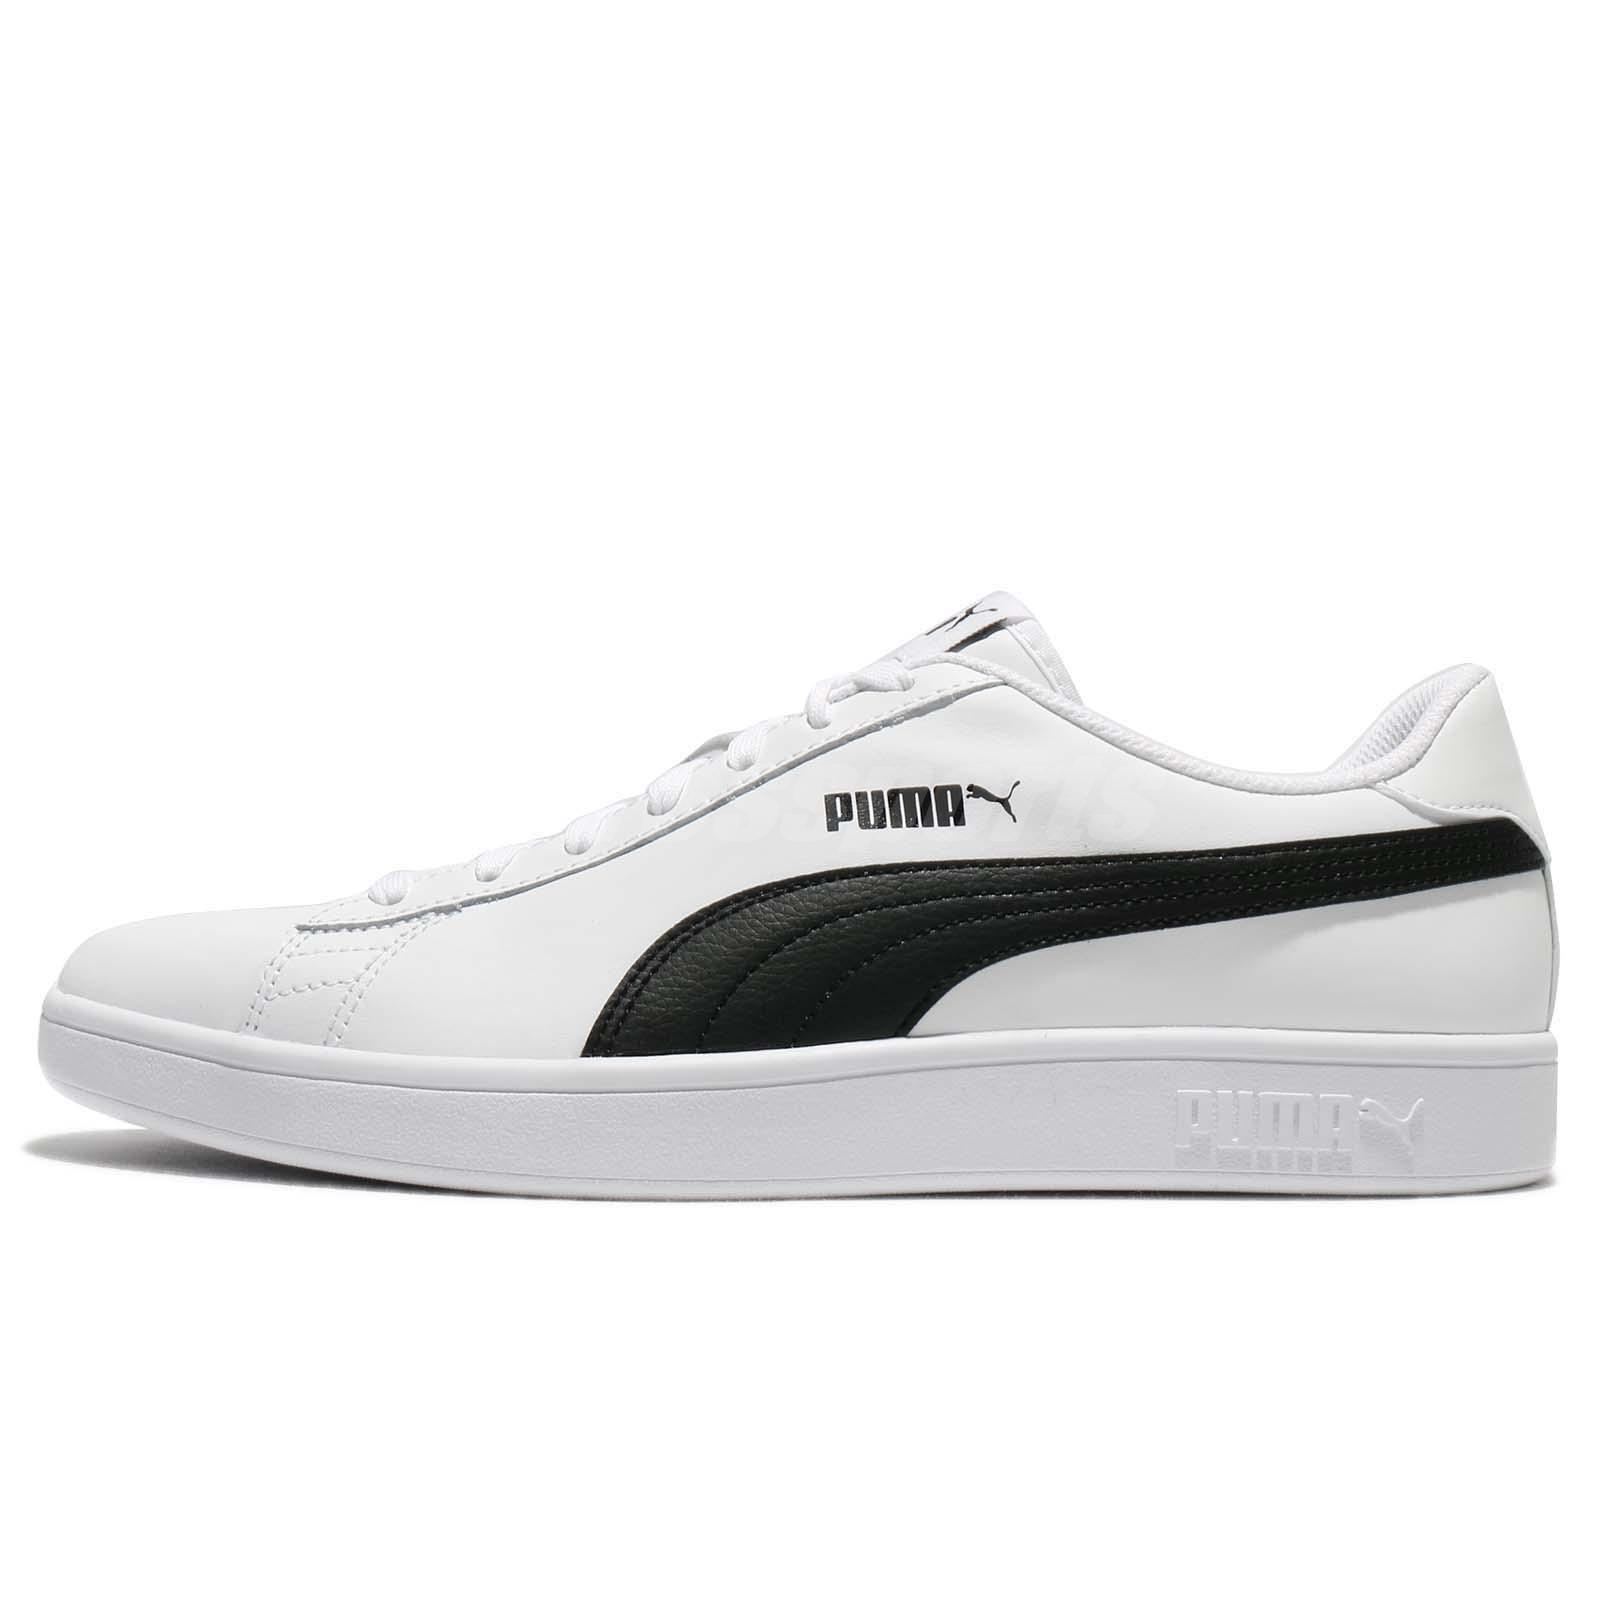 Puma Smash V2 L White Black Classic Men Shoes Sneakers Trainers 365215-01 ba2dae253